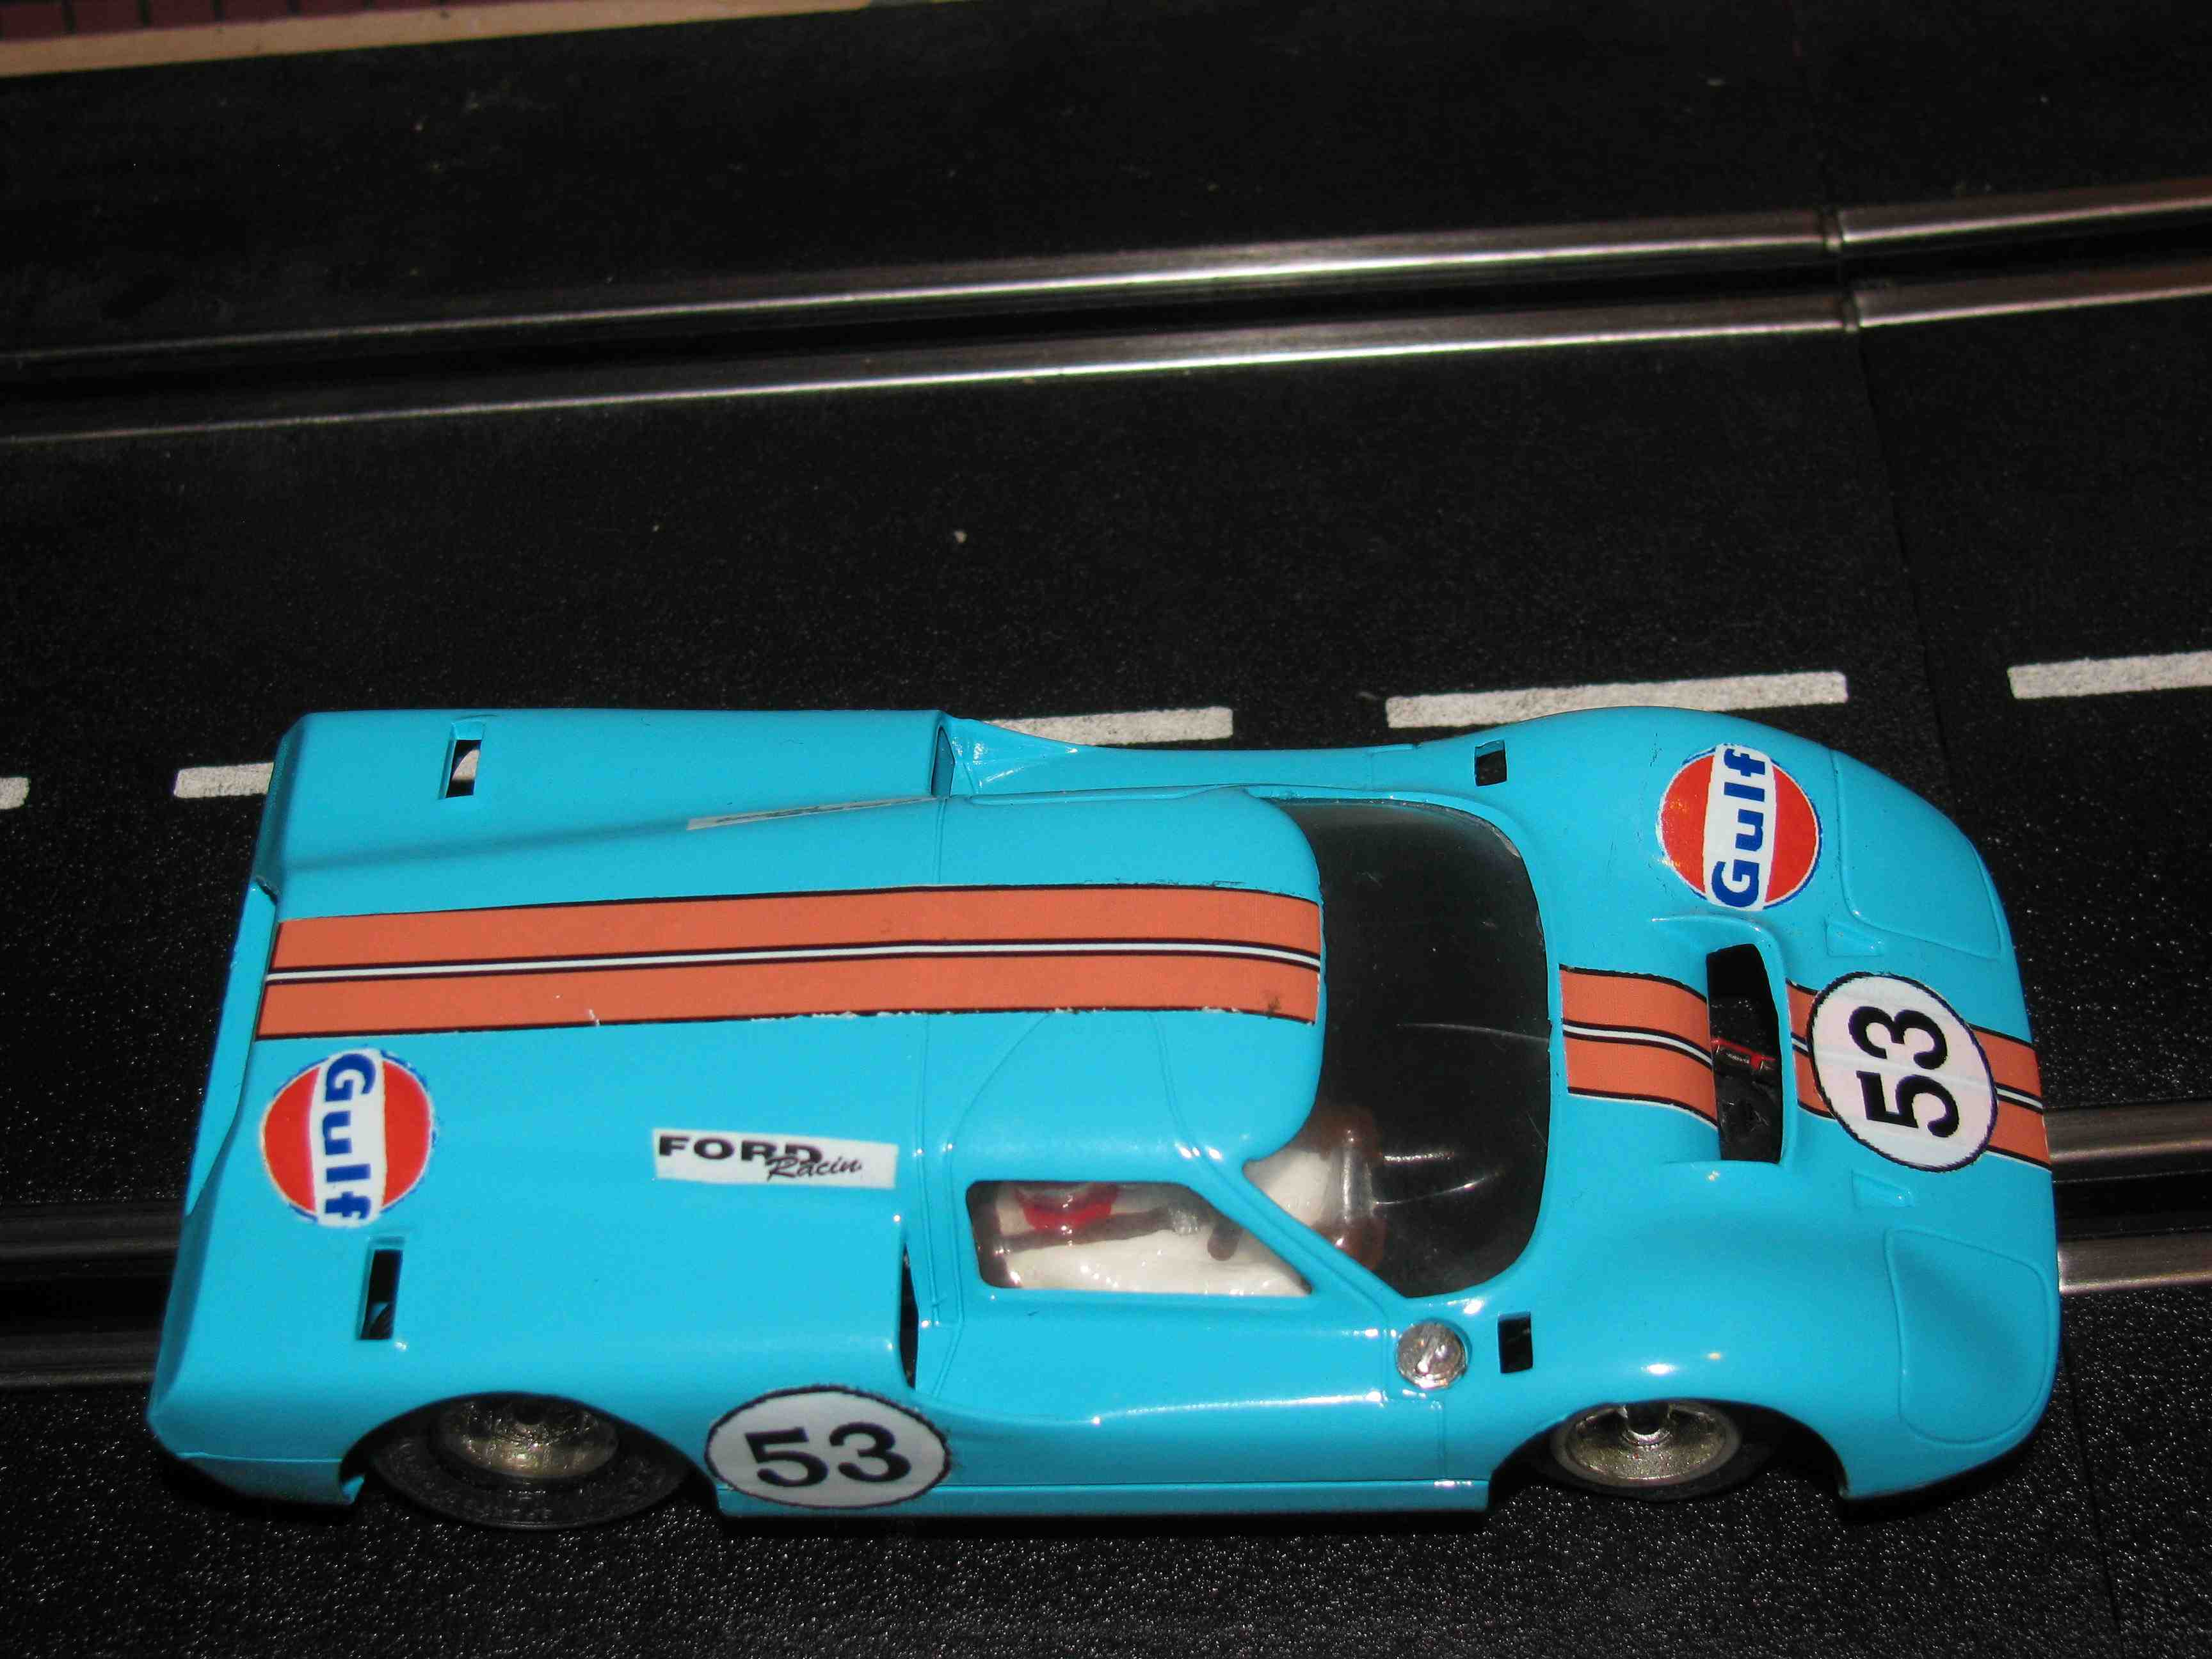 * SOLD * FORD Type-J Slot Car, Car 53, 1/32 Scale